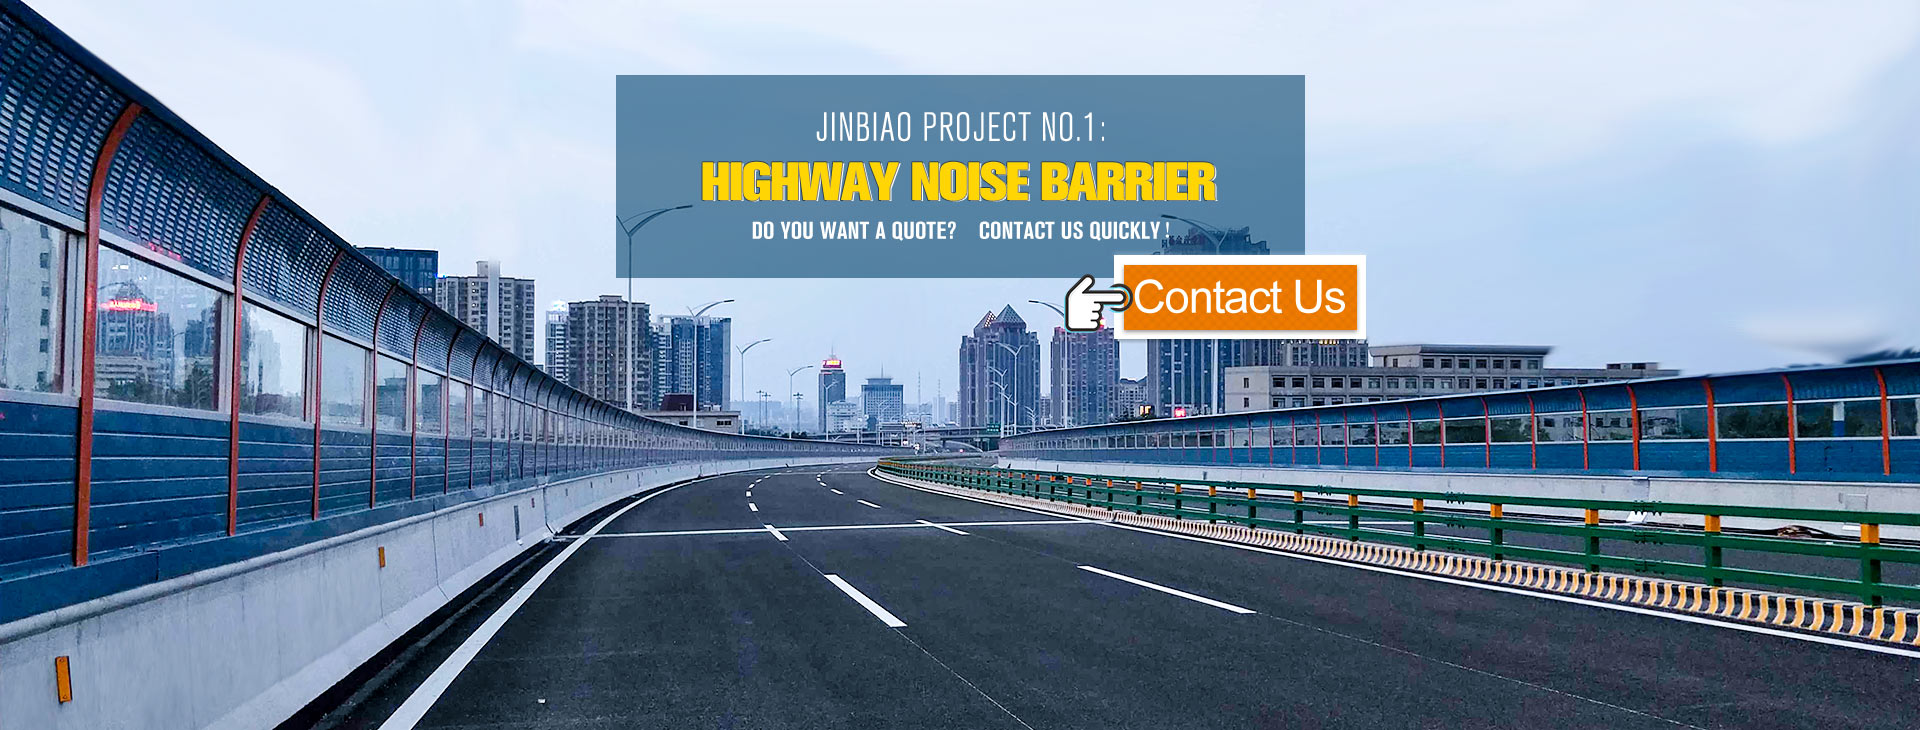 highway-noise-barrier